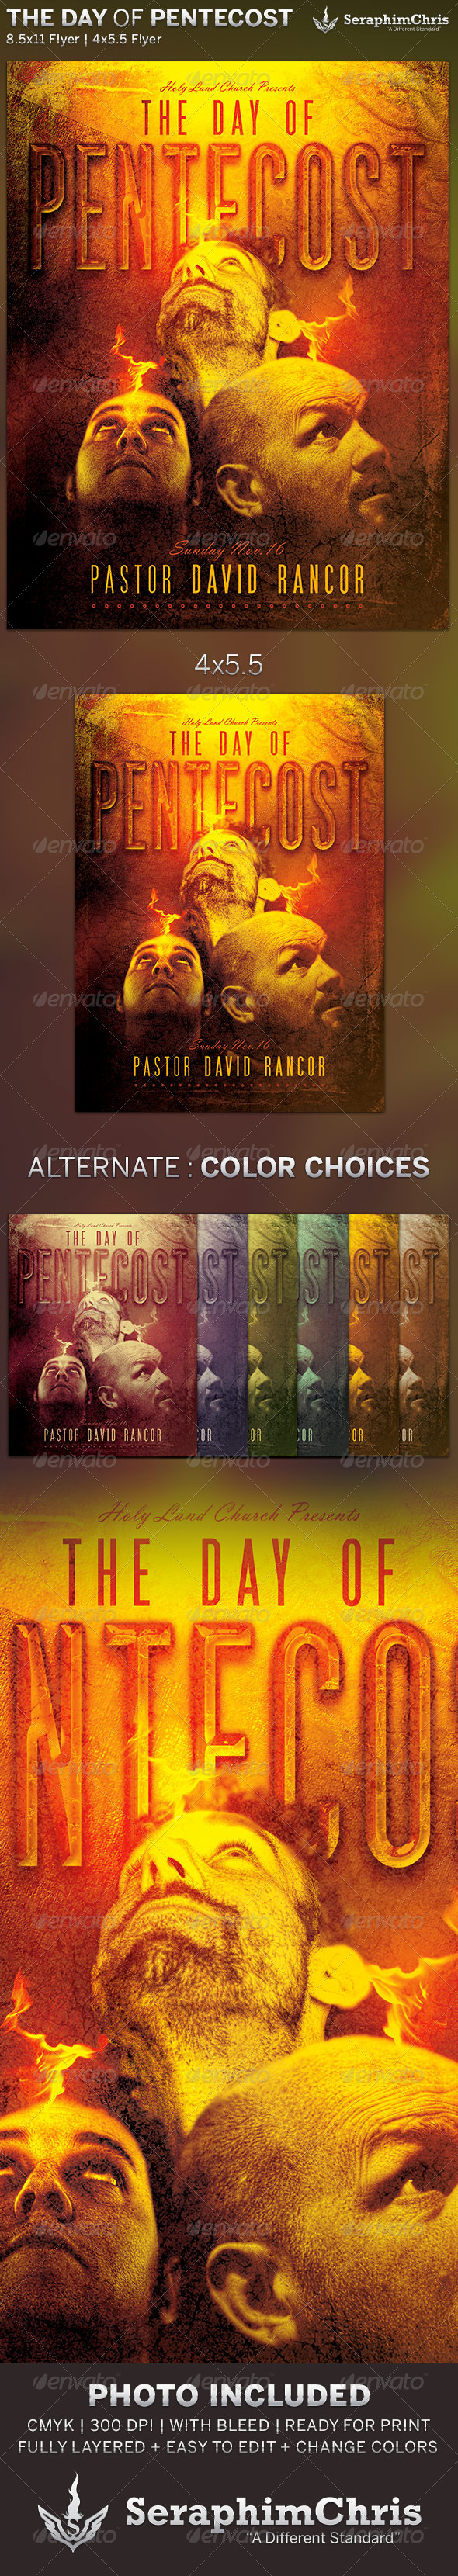 The Day of Pentecost: Church Flyer Template - Church Flyers